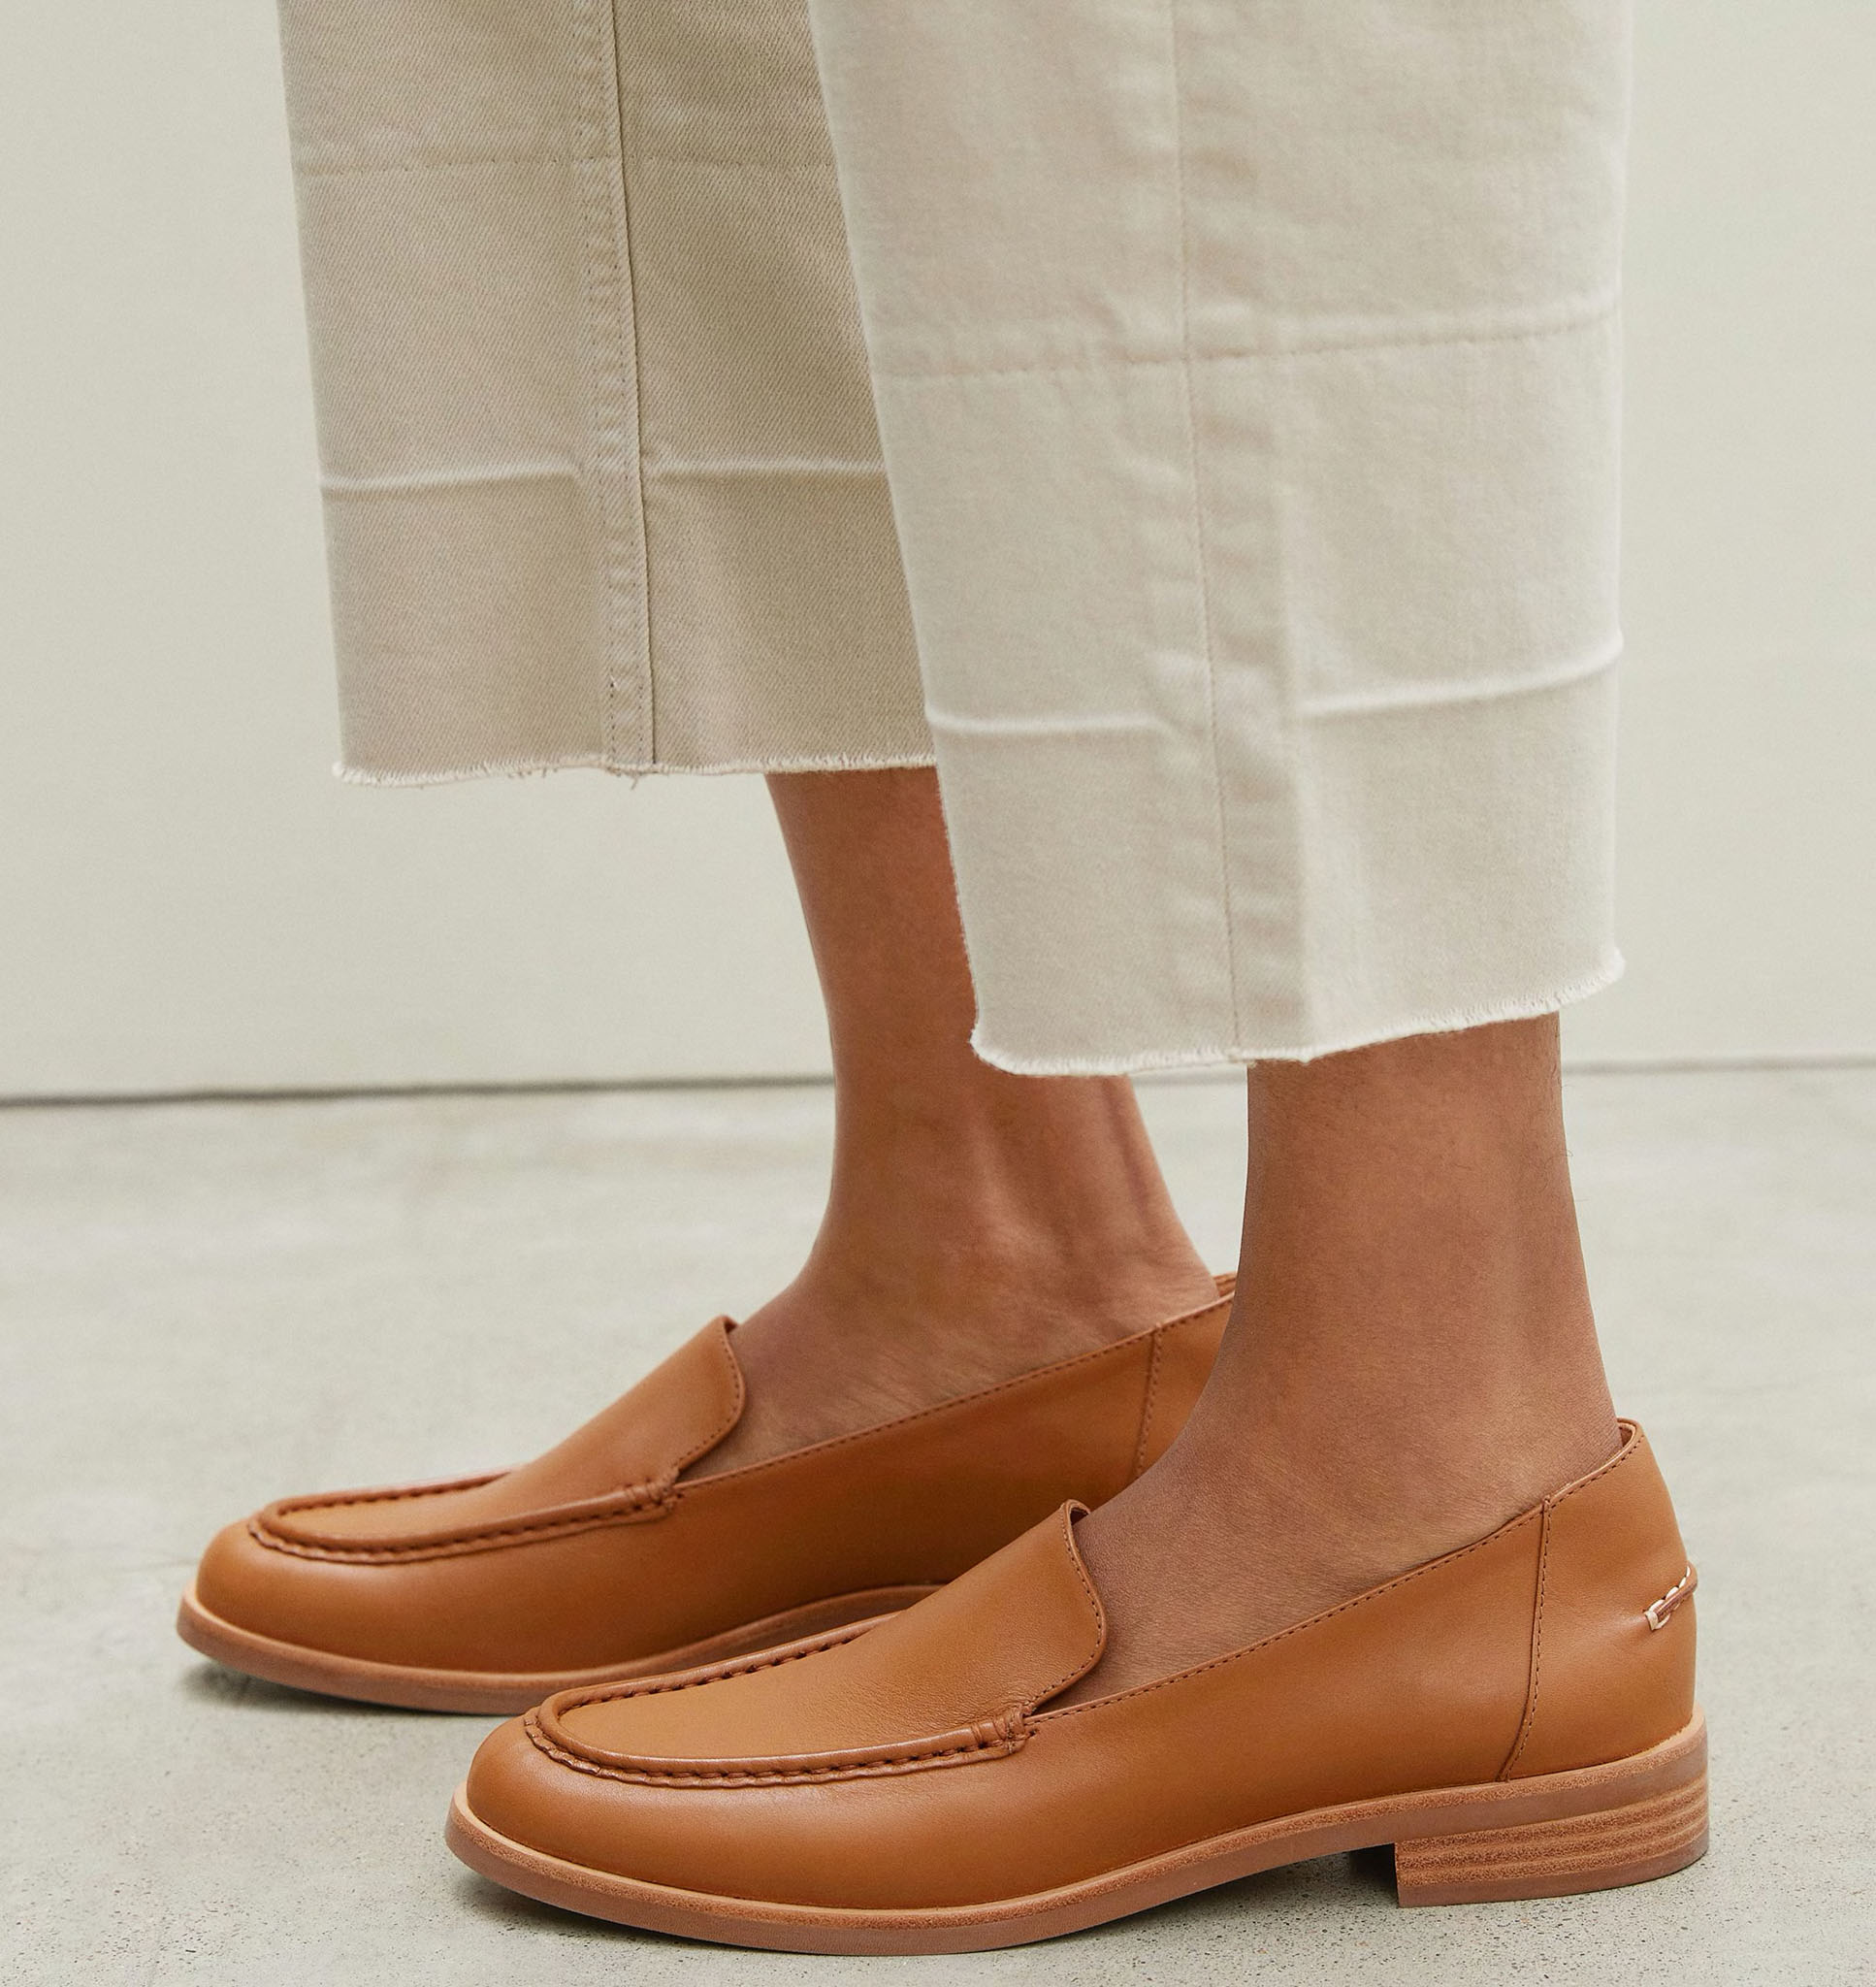 Made from buttery soft leather, Everlane's the Modern loafers feature tapered toes, stitch details, and 1-inch thick stacked heels